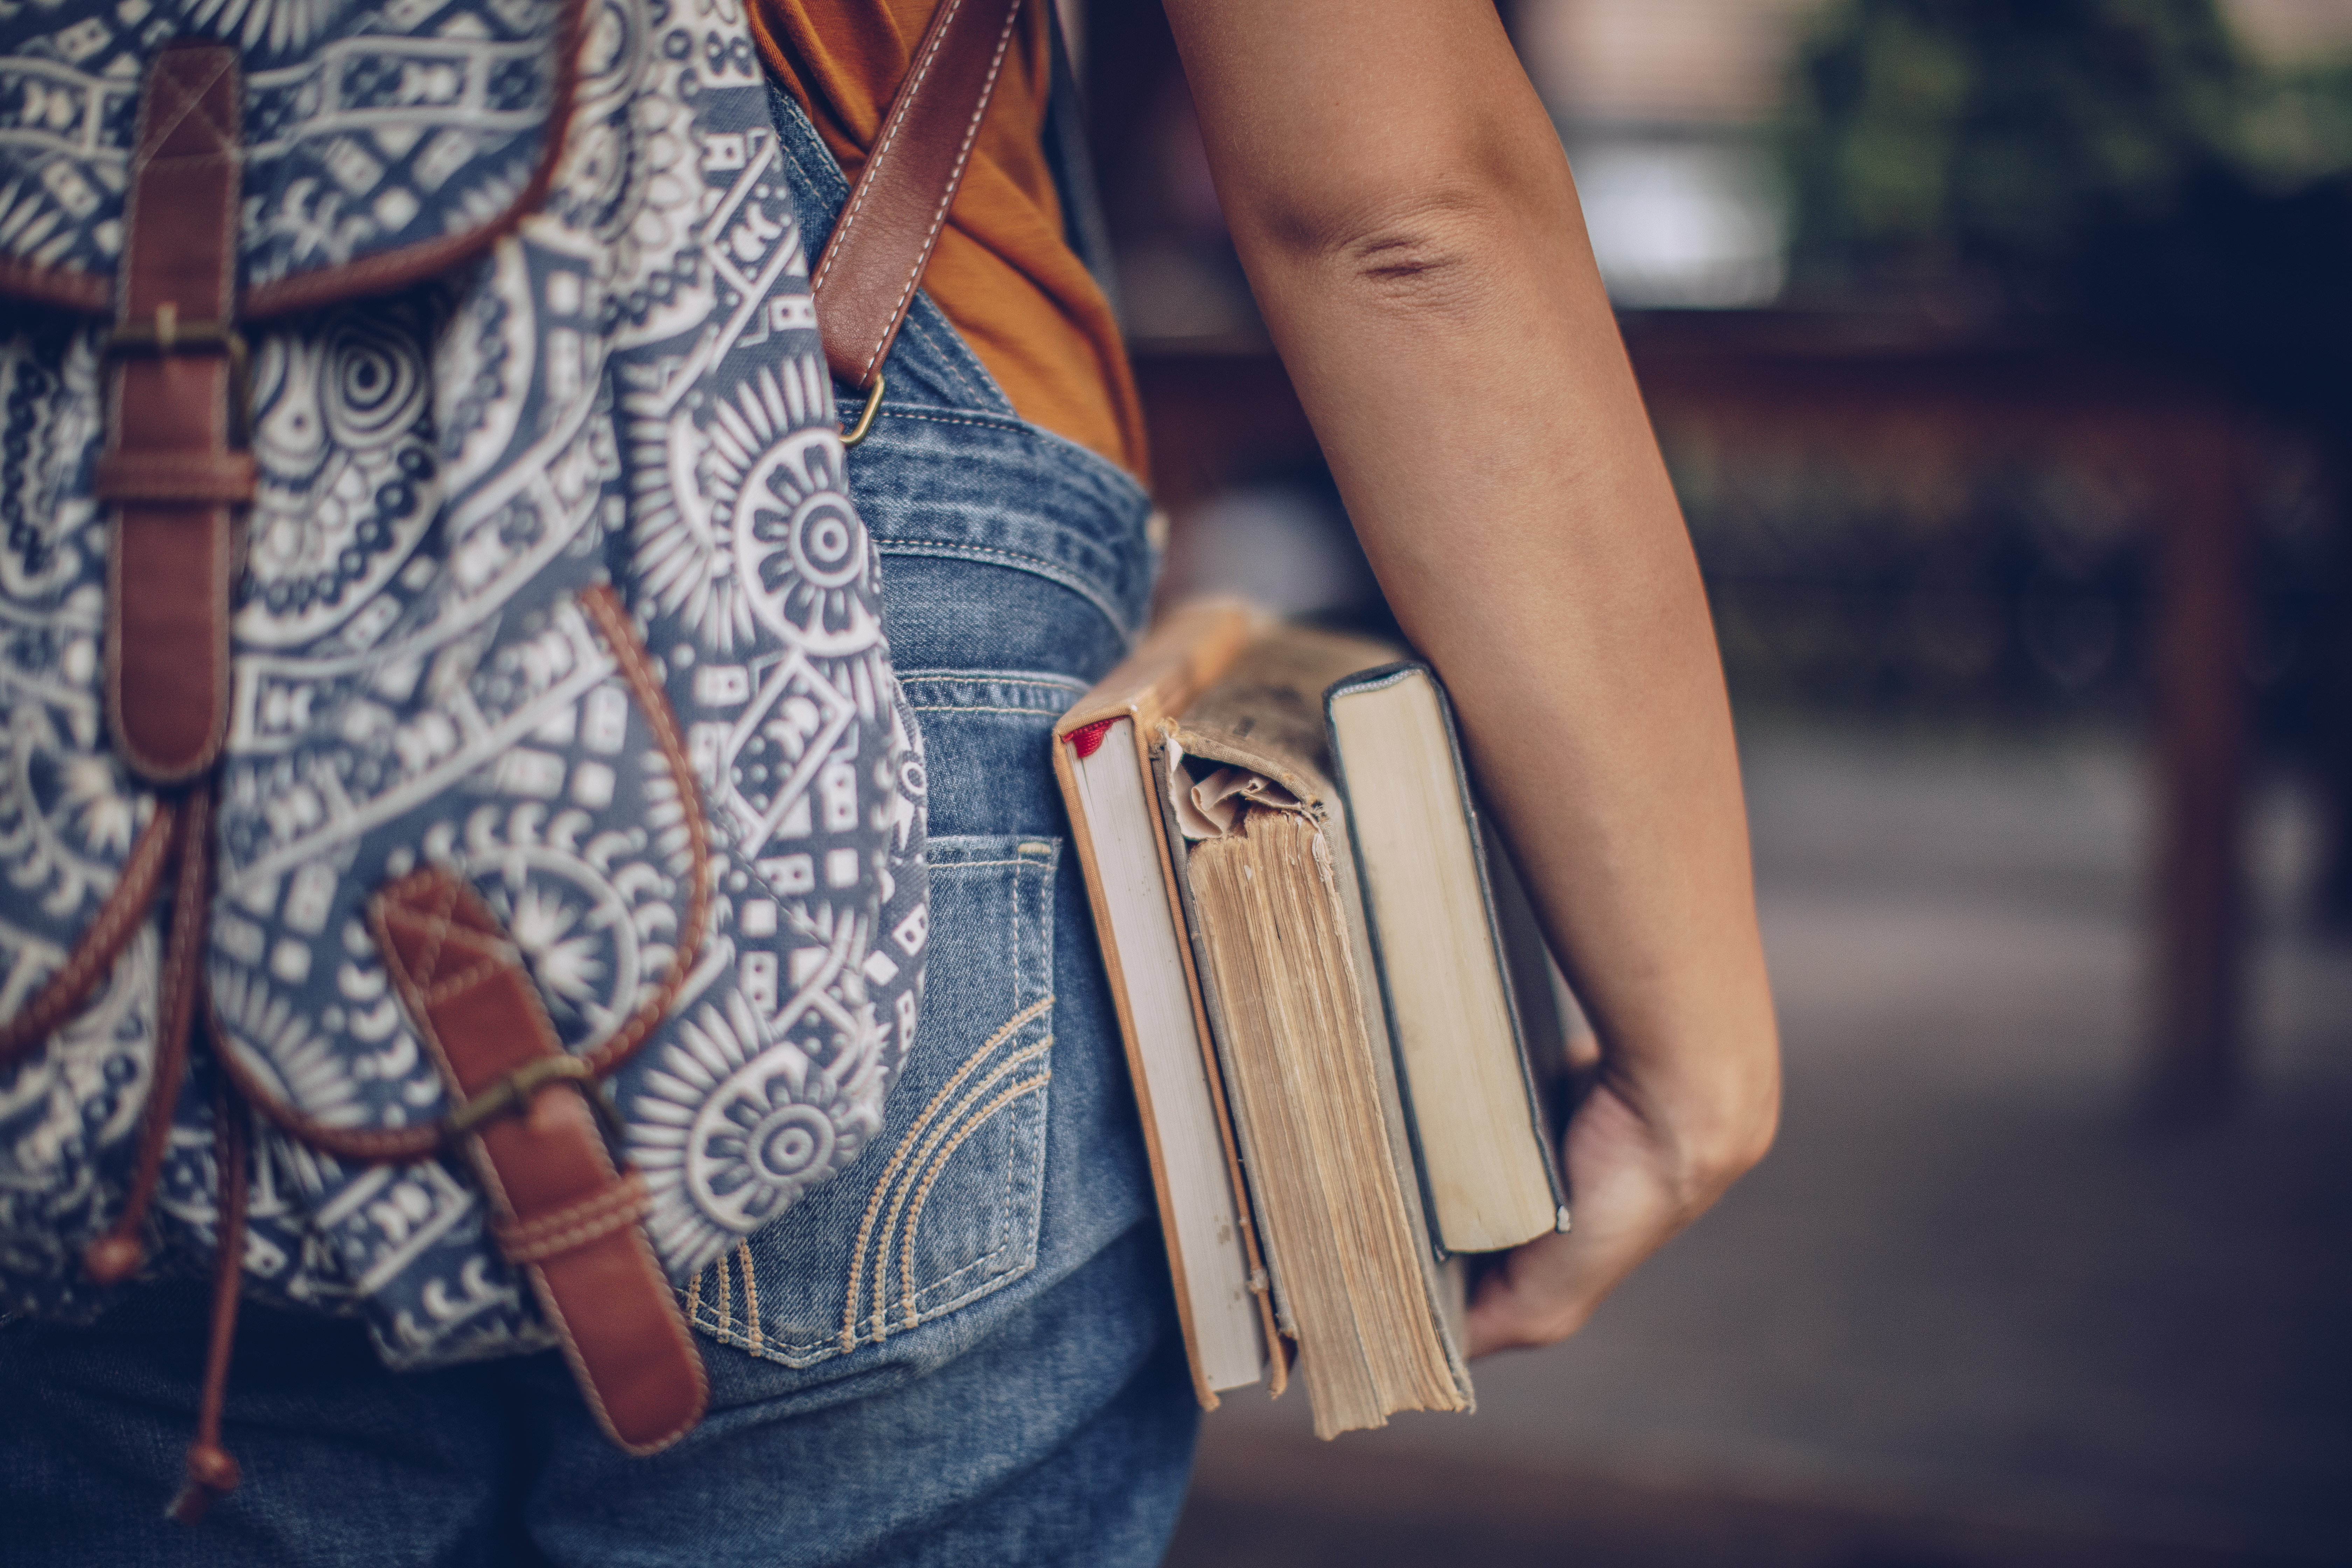 Woman student holding book